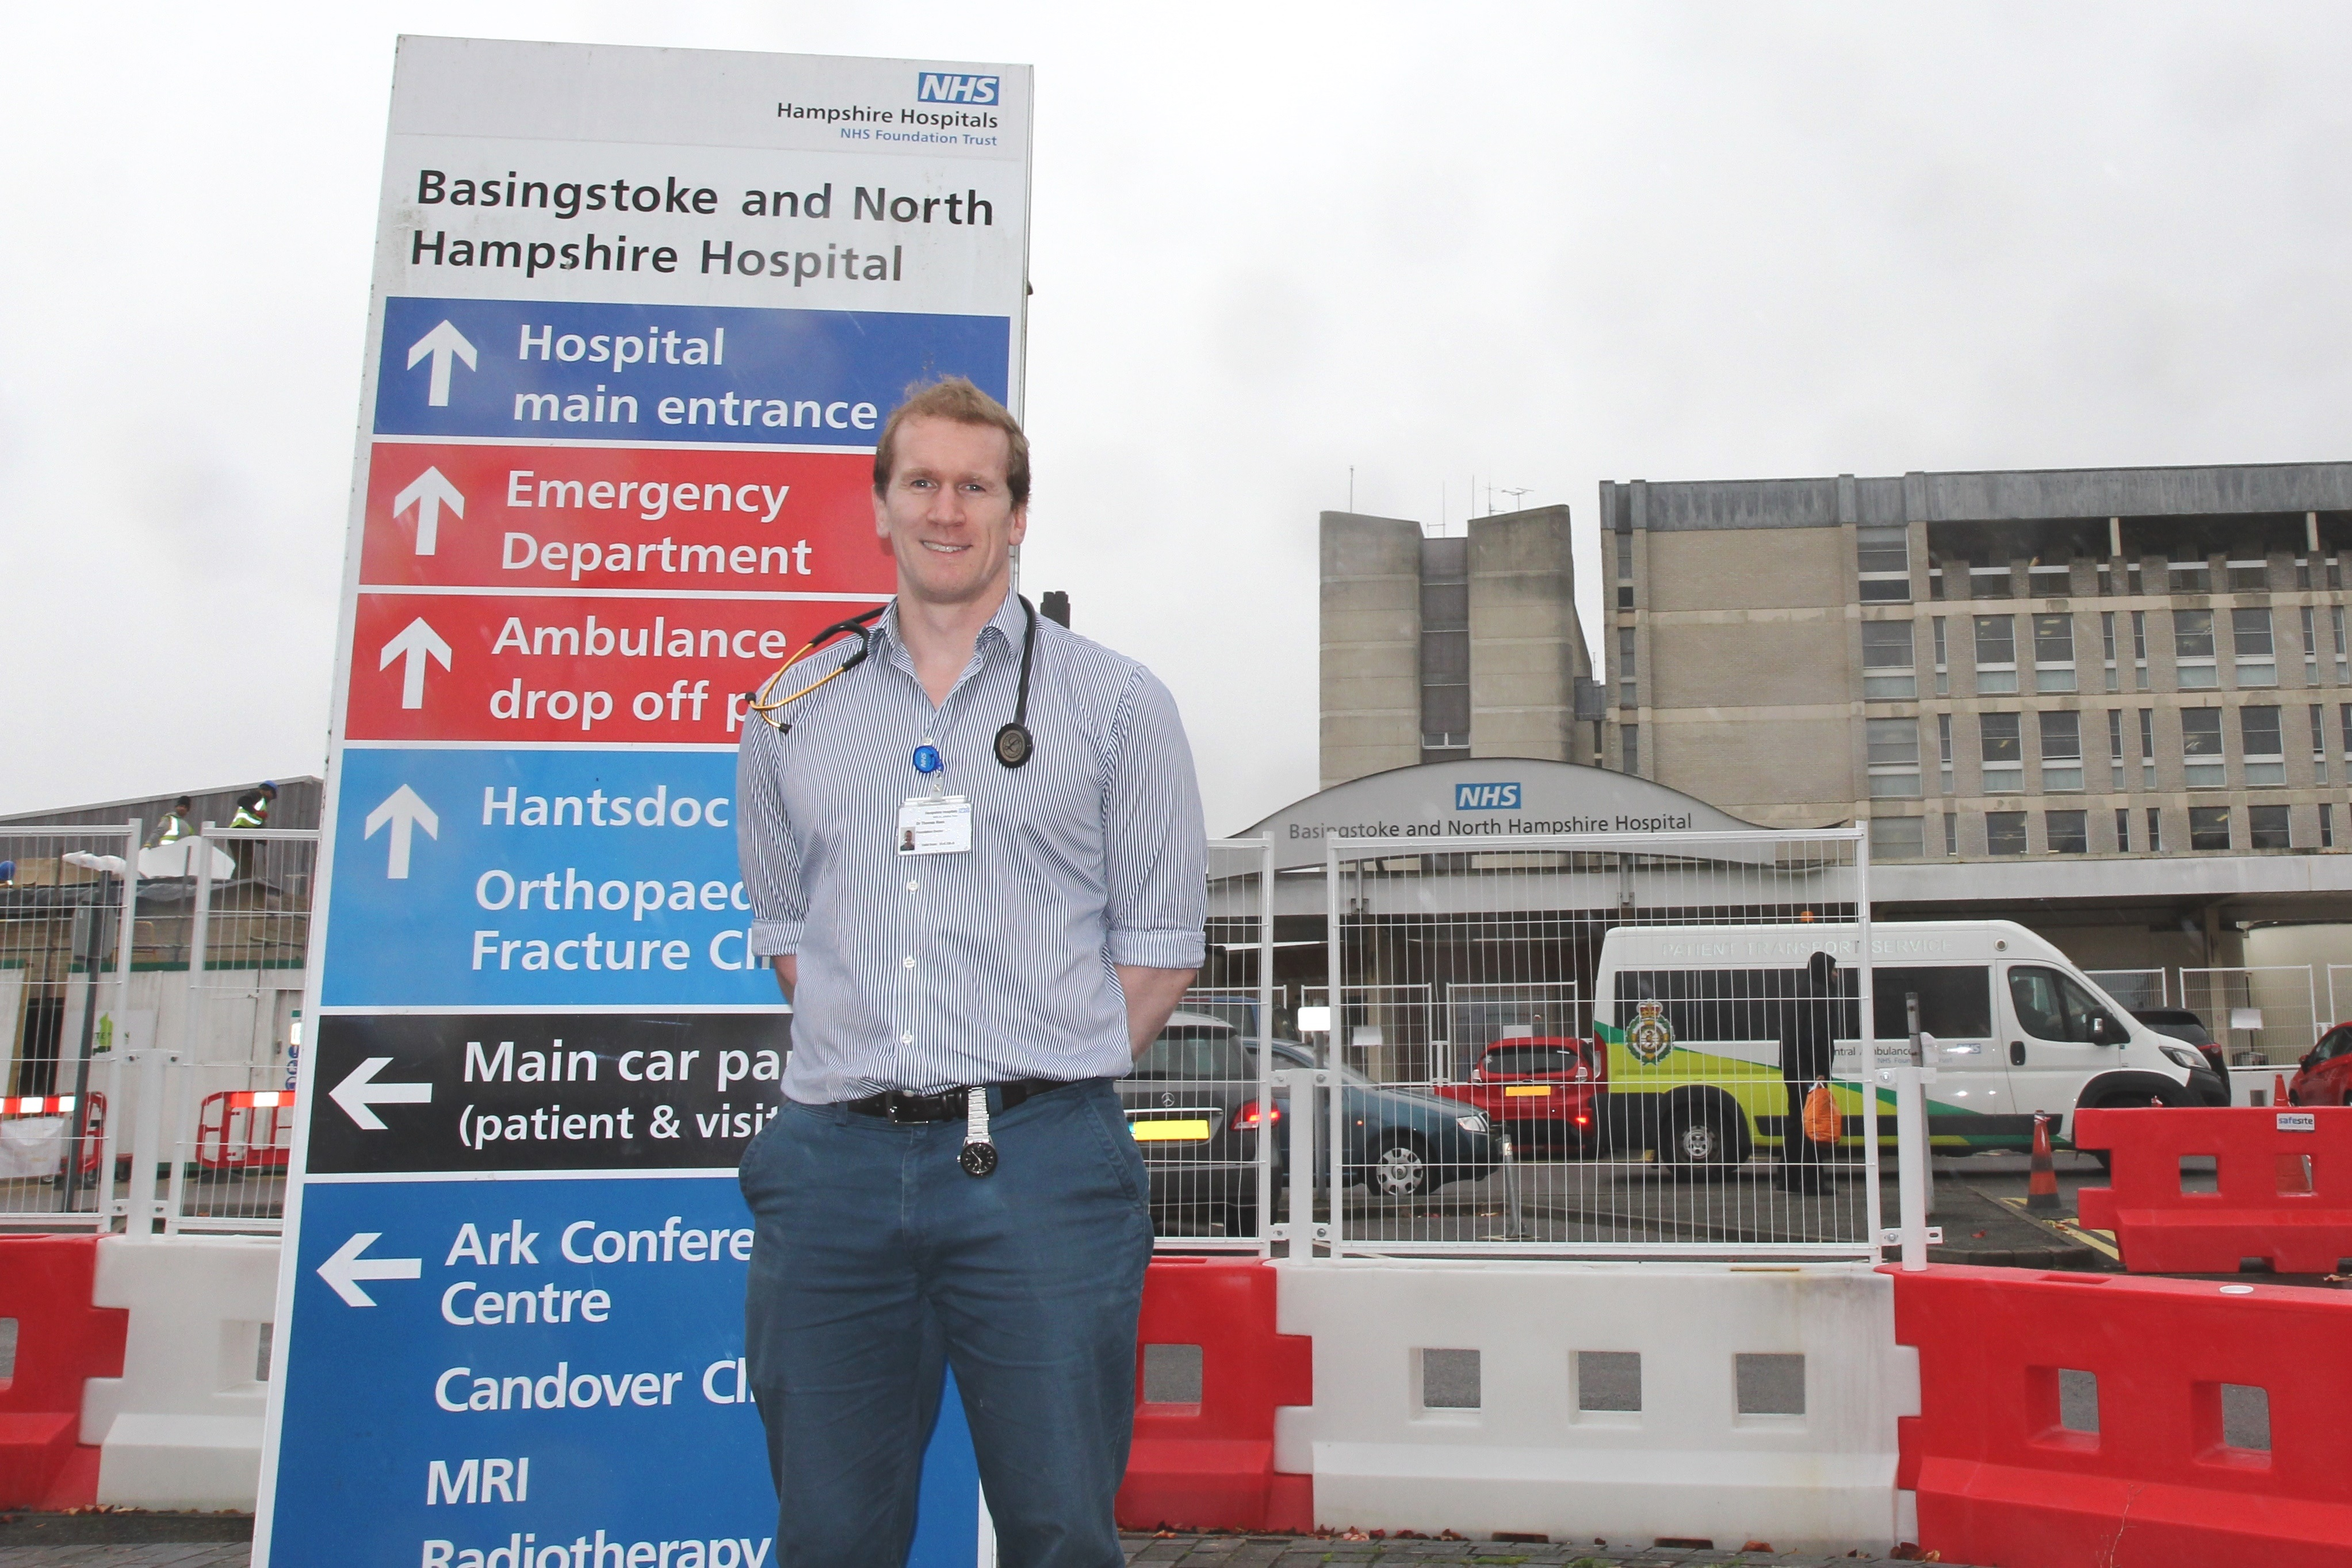 Dr Tom Rees - From try saving to life saving